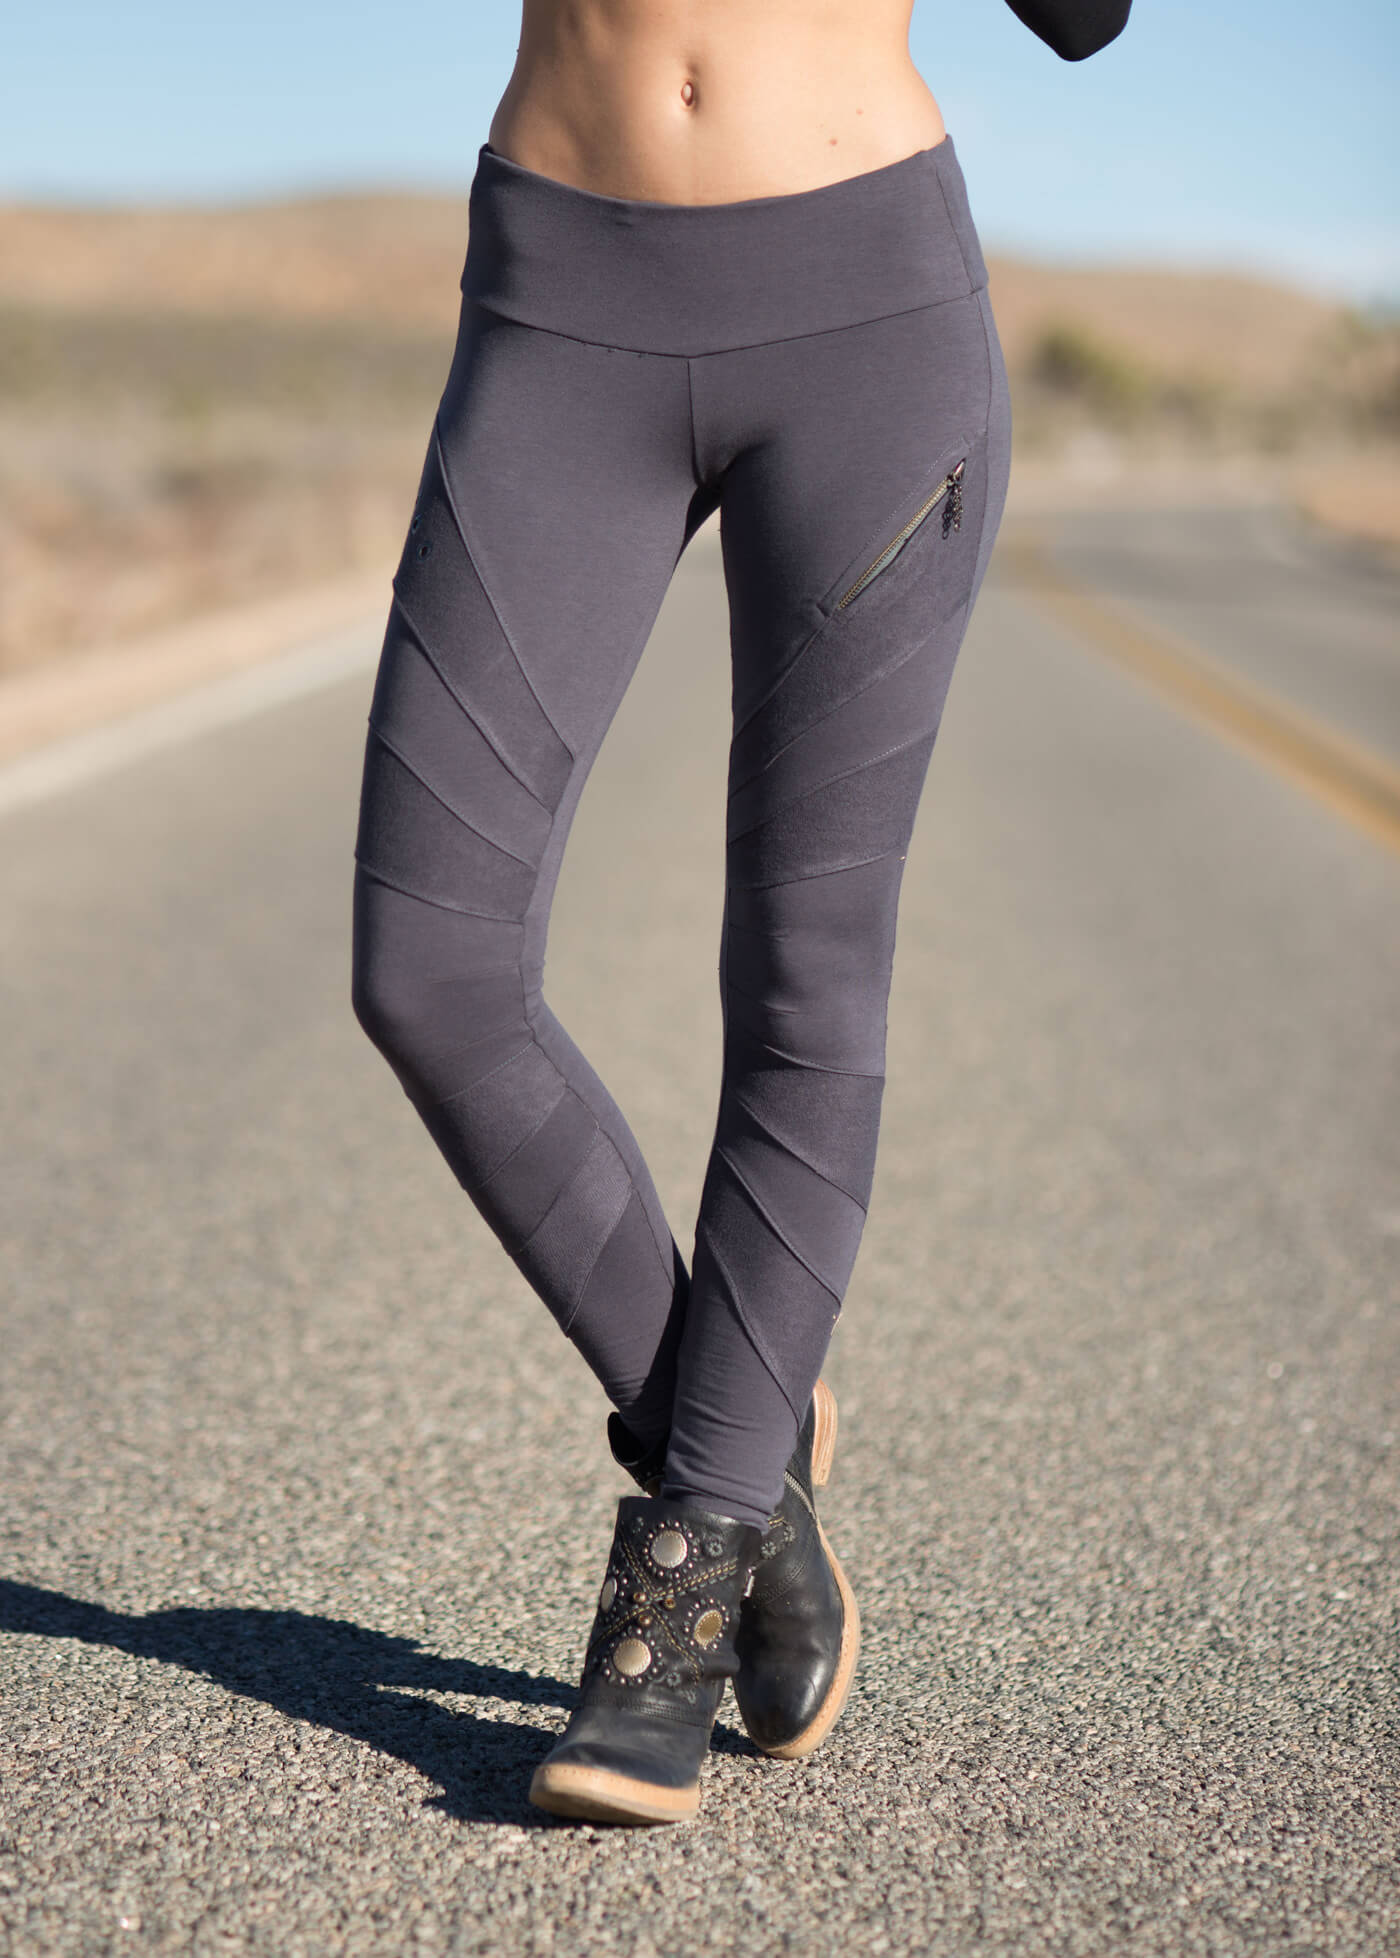 Octavia Leggings in Bamboo & Organic Cotton | Nomads Hemp Wear